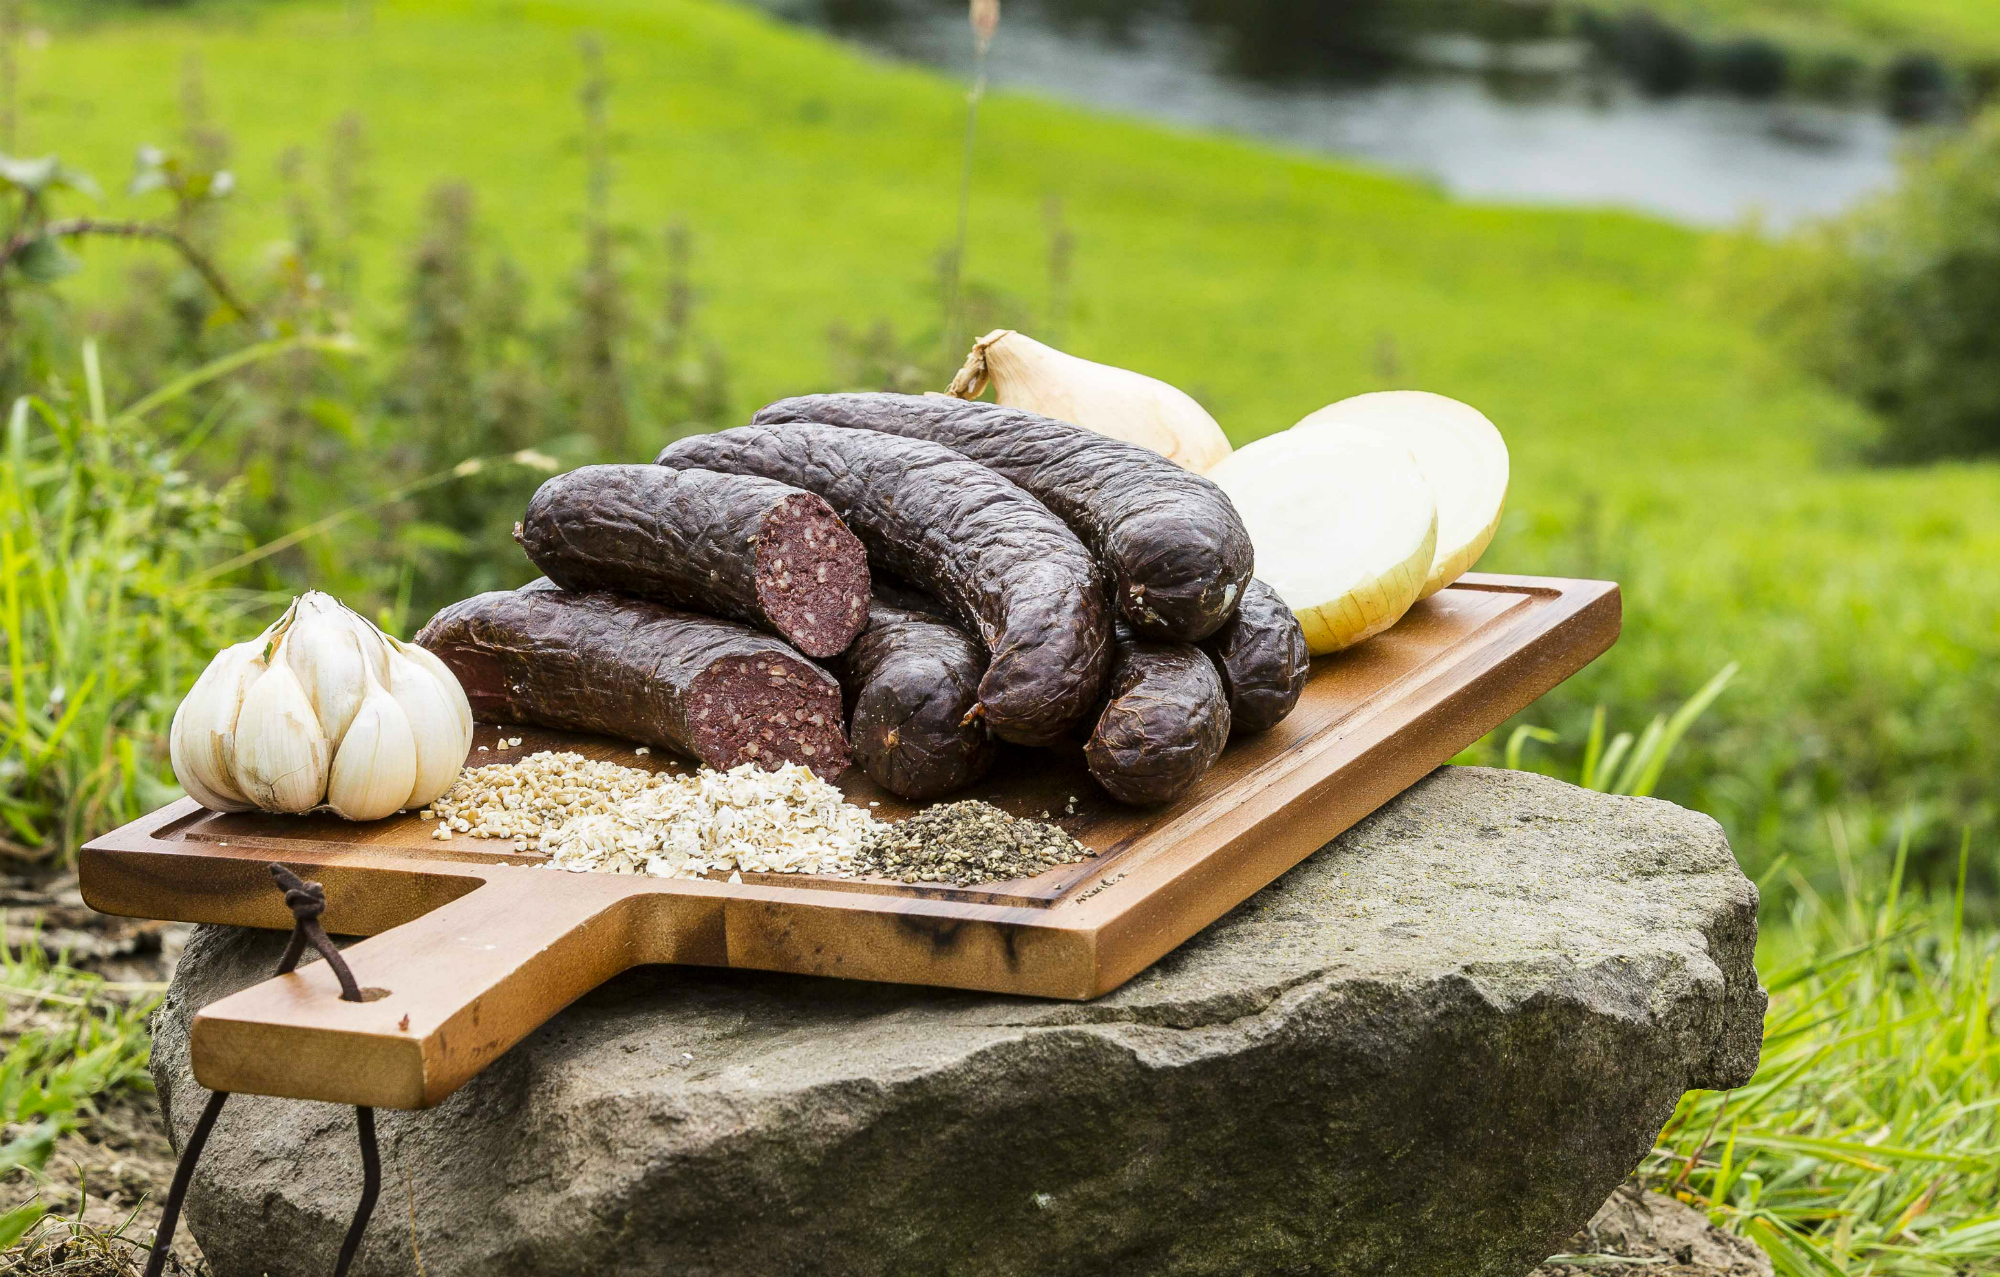 A wooden tray topped with six Smoked Black Pudding. There is grass in the background